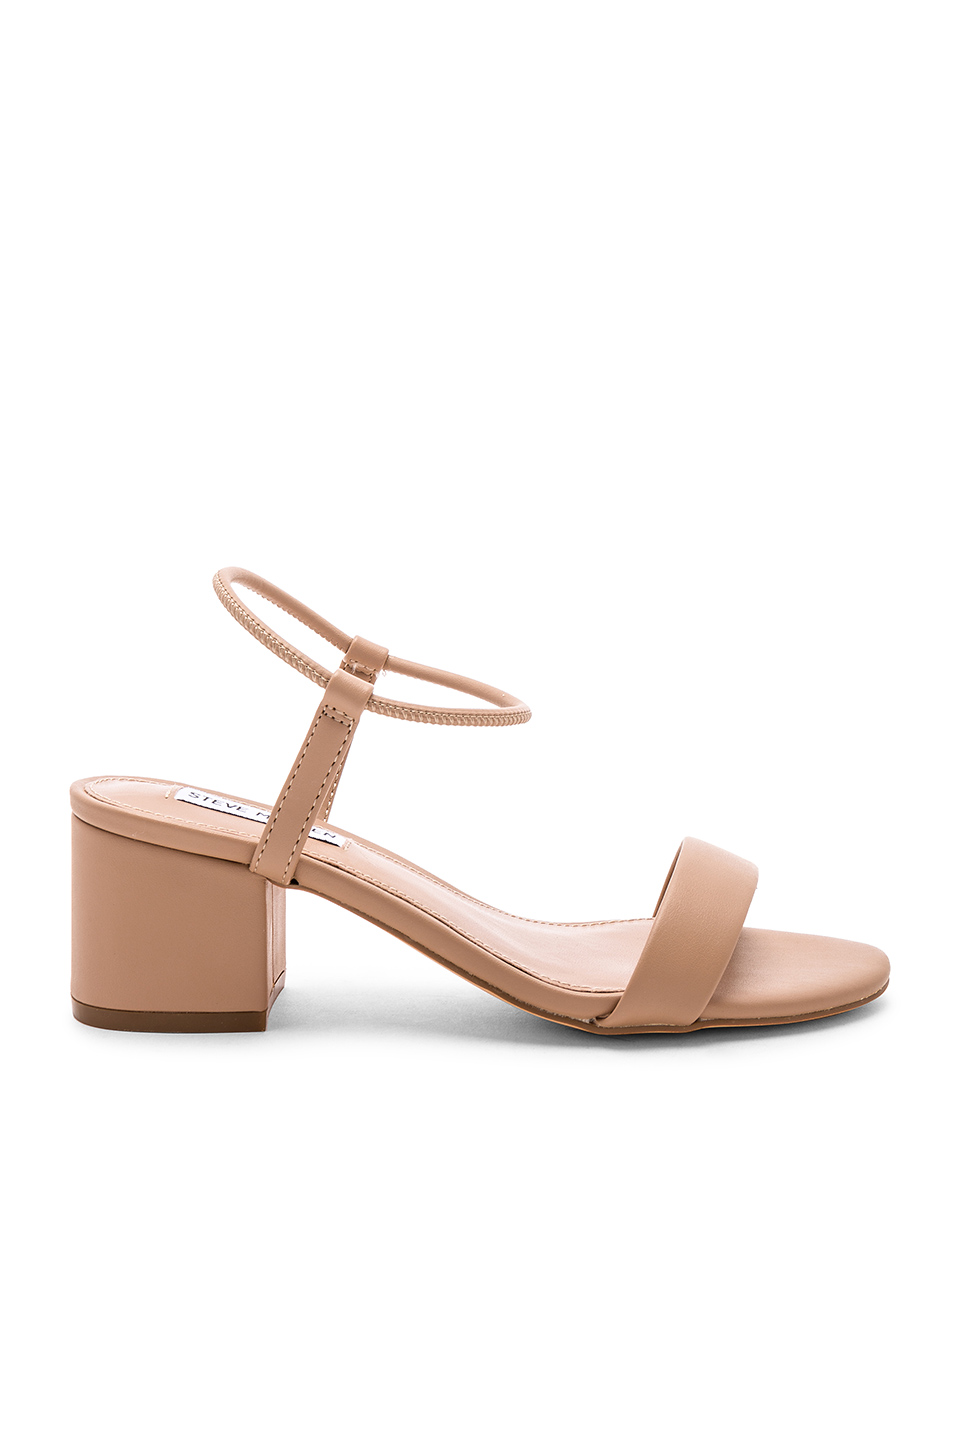 Steve Madden at  Revolve  Ida sandals, $80